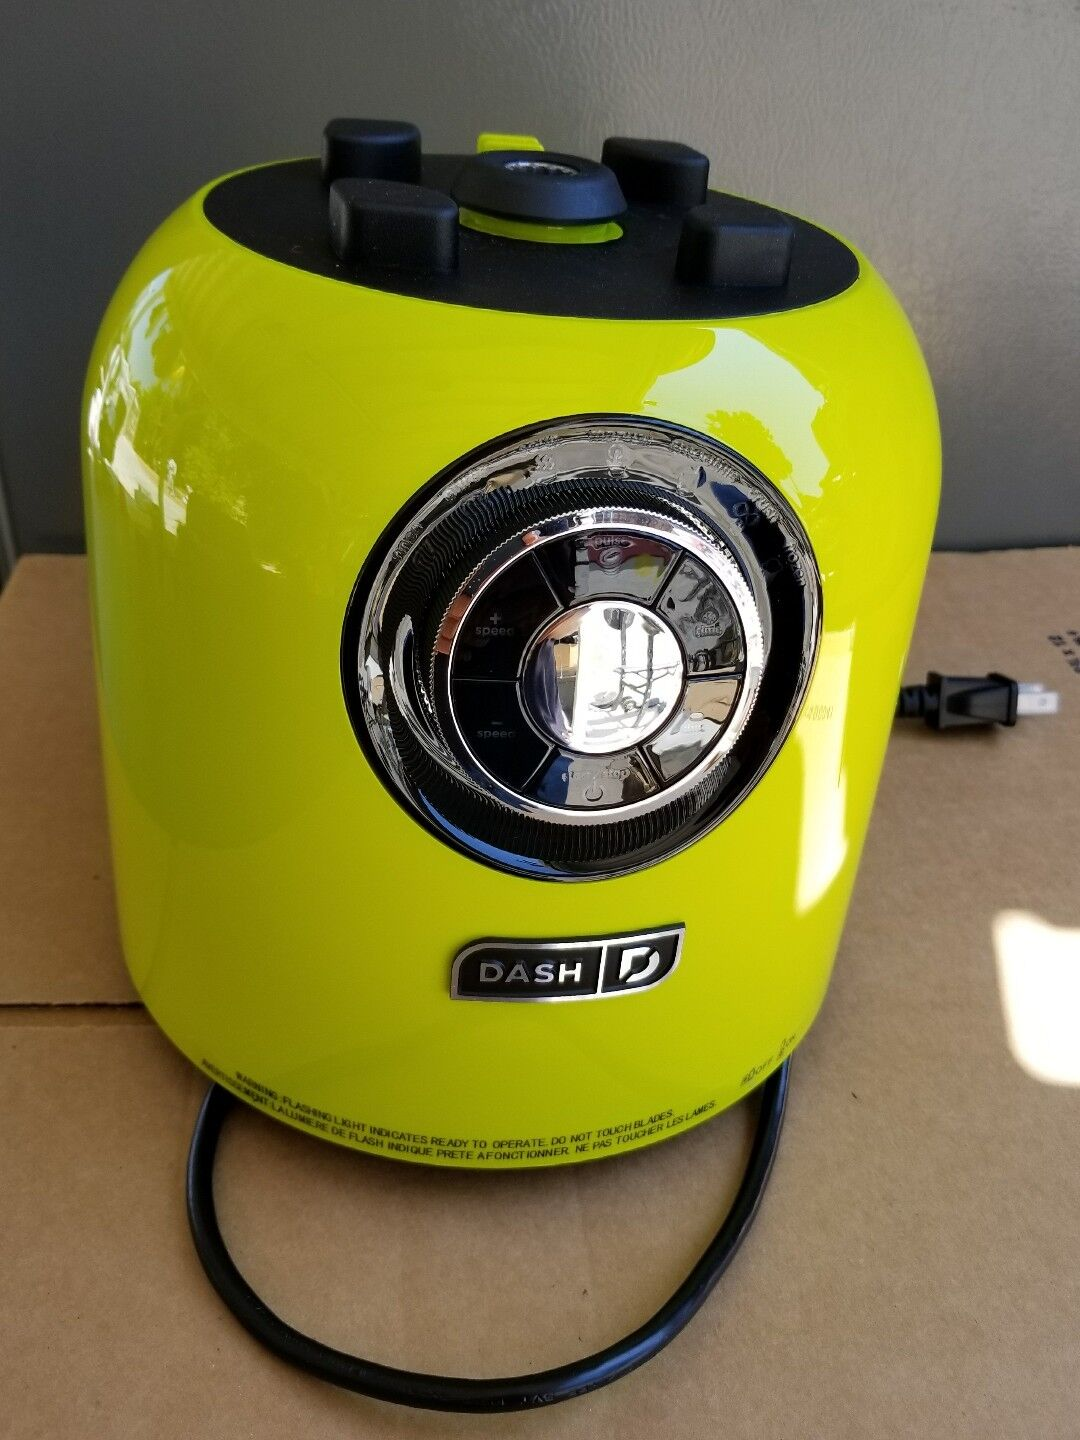 DASH CHEF SERIES  MOTOR ONLY  1400W,2.2 HORSE POWER COMMERCIAL PERFORMANCE